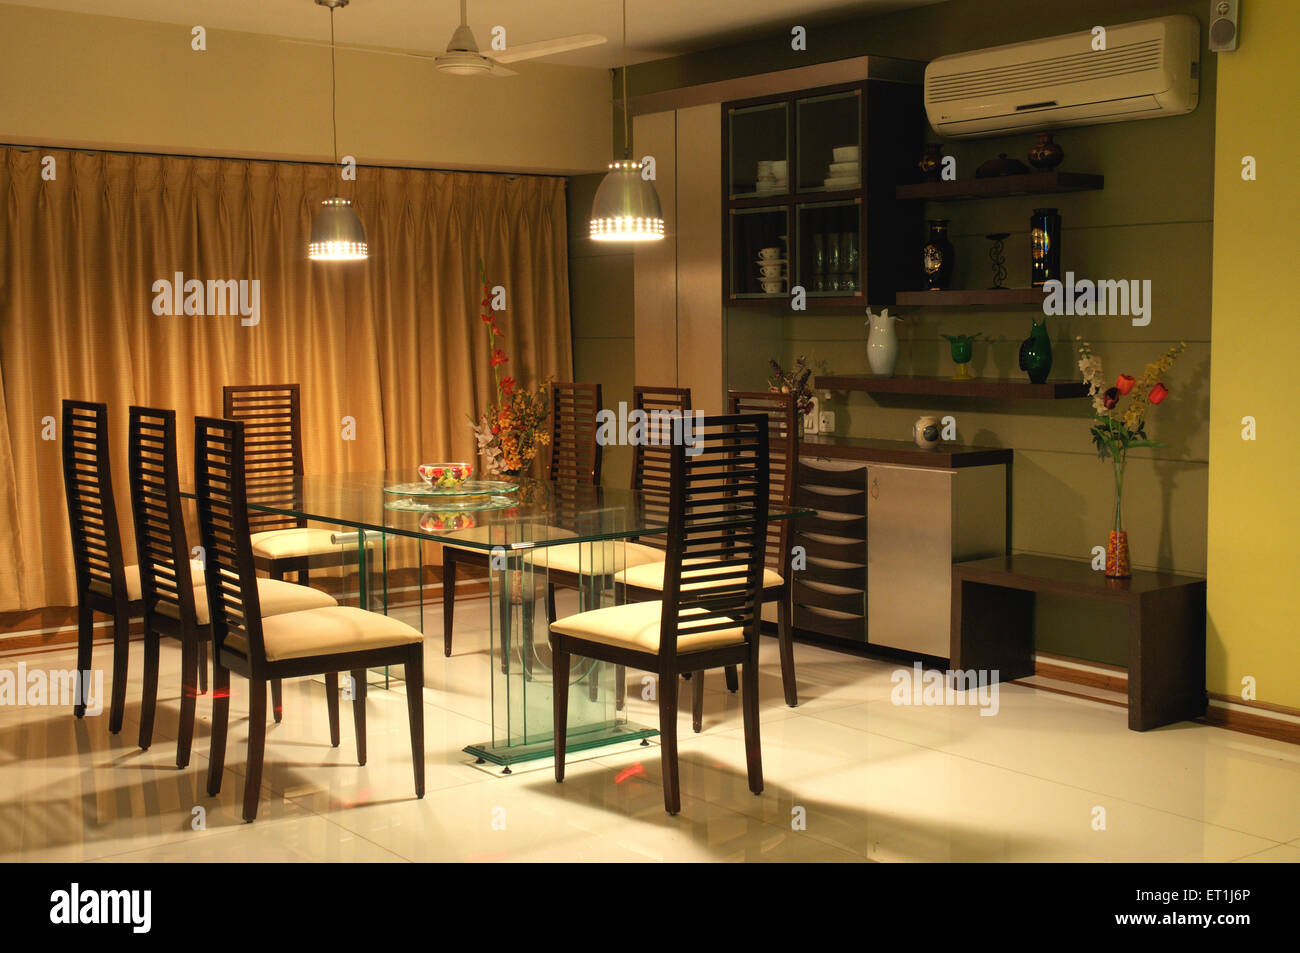 Dining Table Chairs In Living Room Of Indian Home In Bombay Mumbai  Maharashtra India   PR#191   Ssk 166012